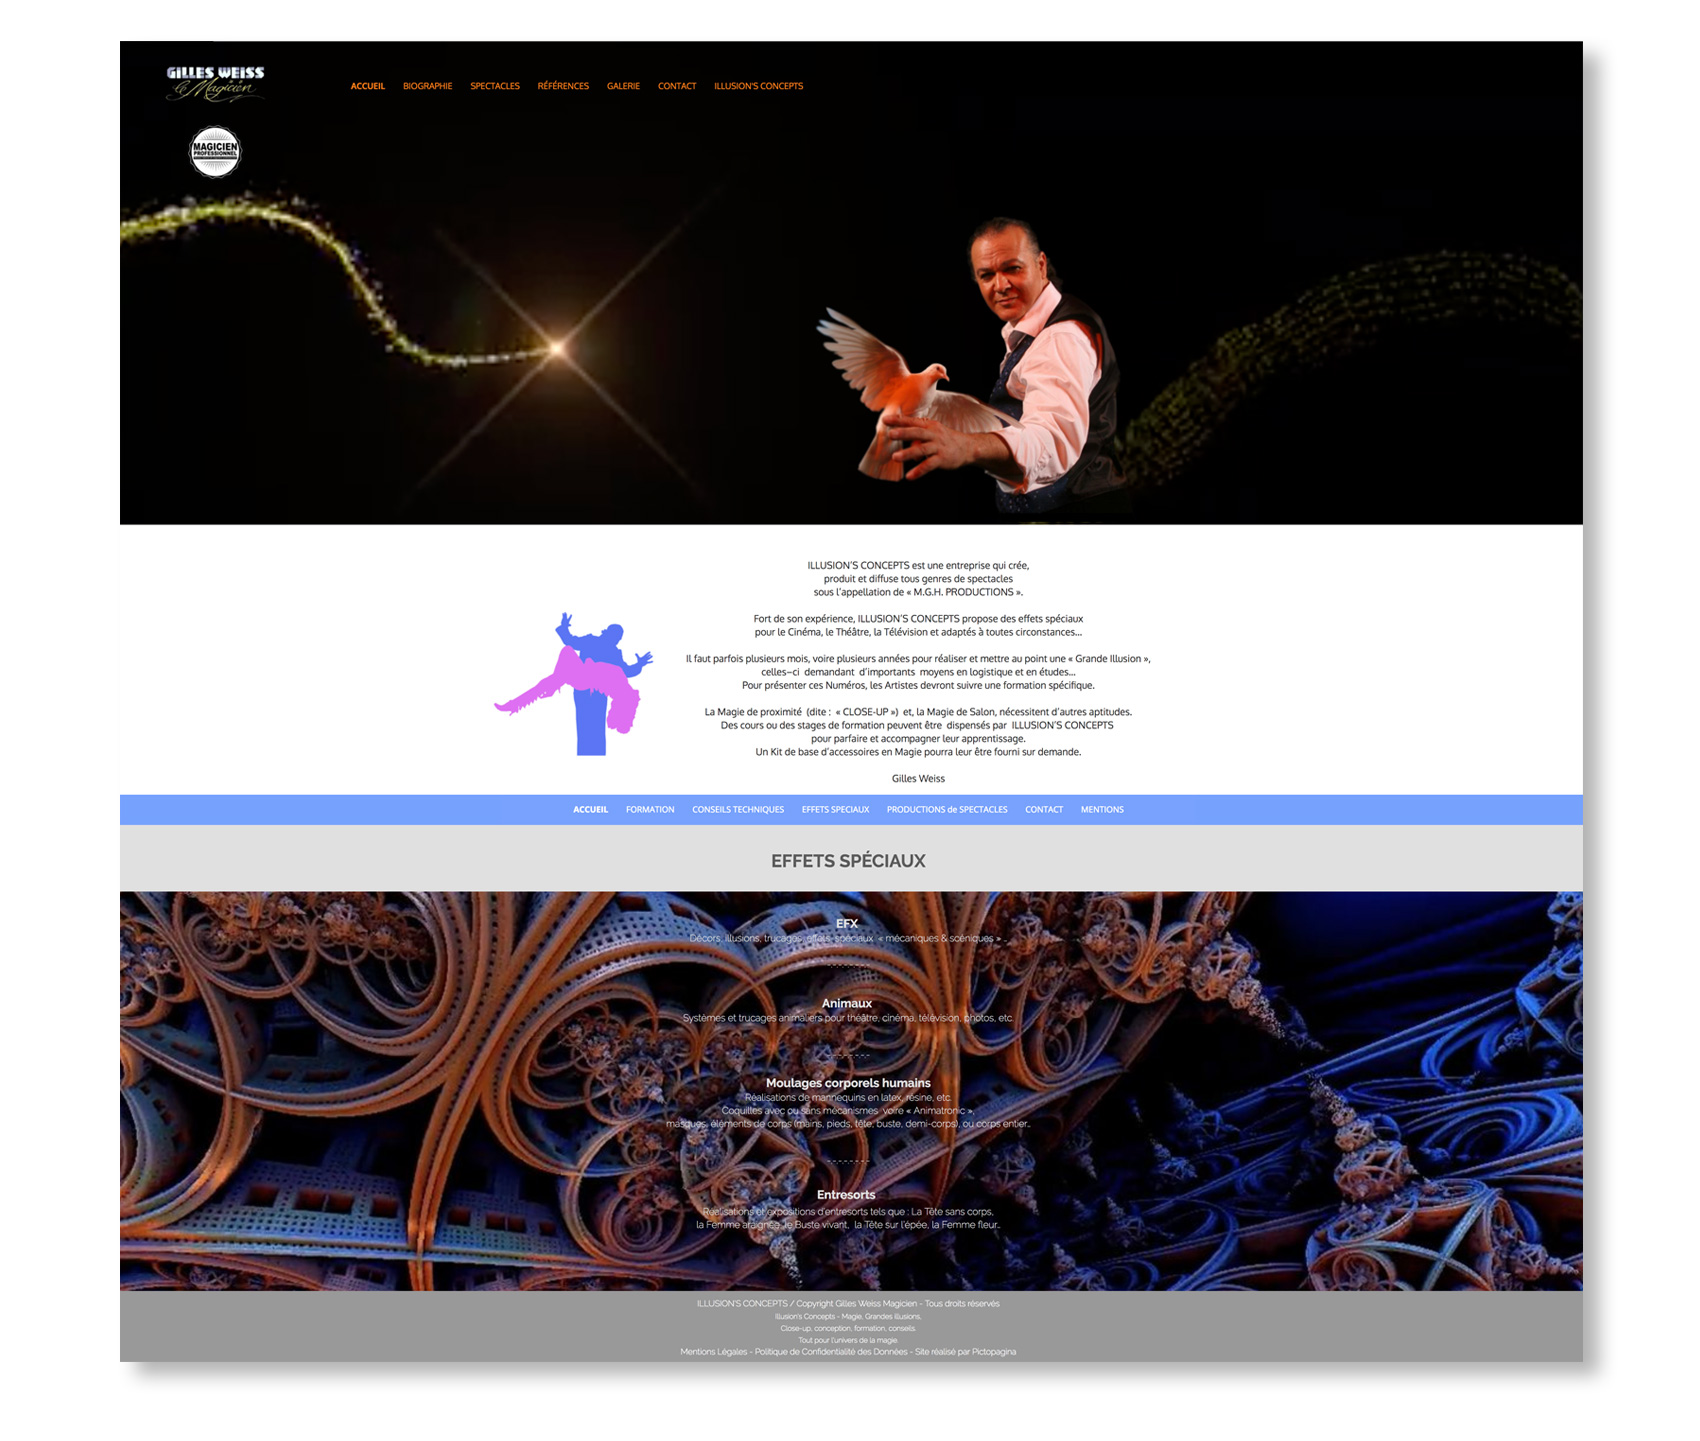 pictopagina-real-site-gilles-weiss-&-illusions-concepts